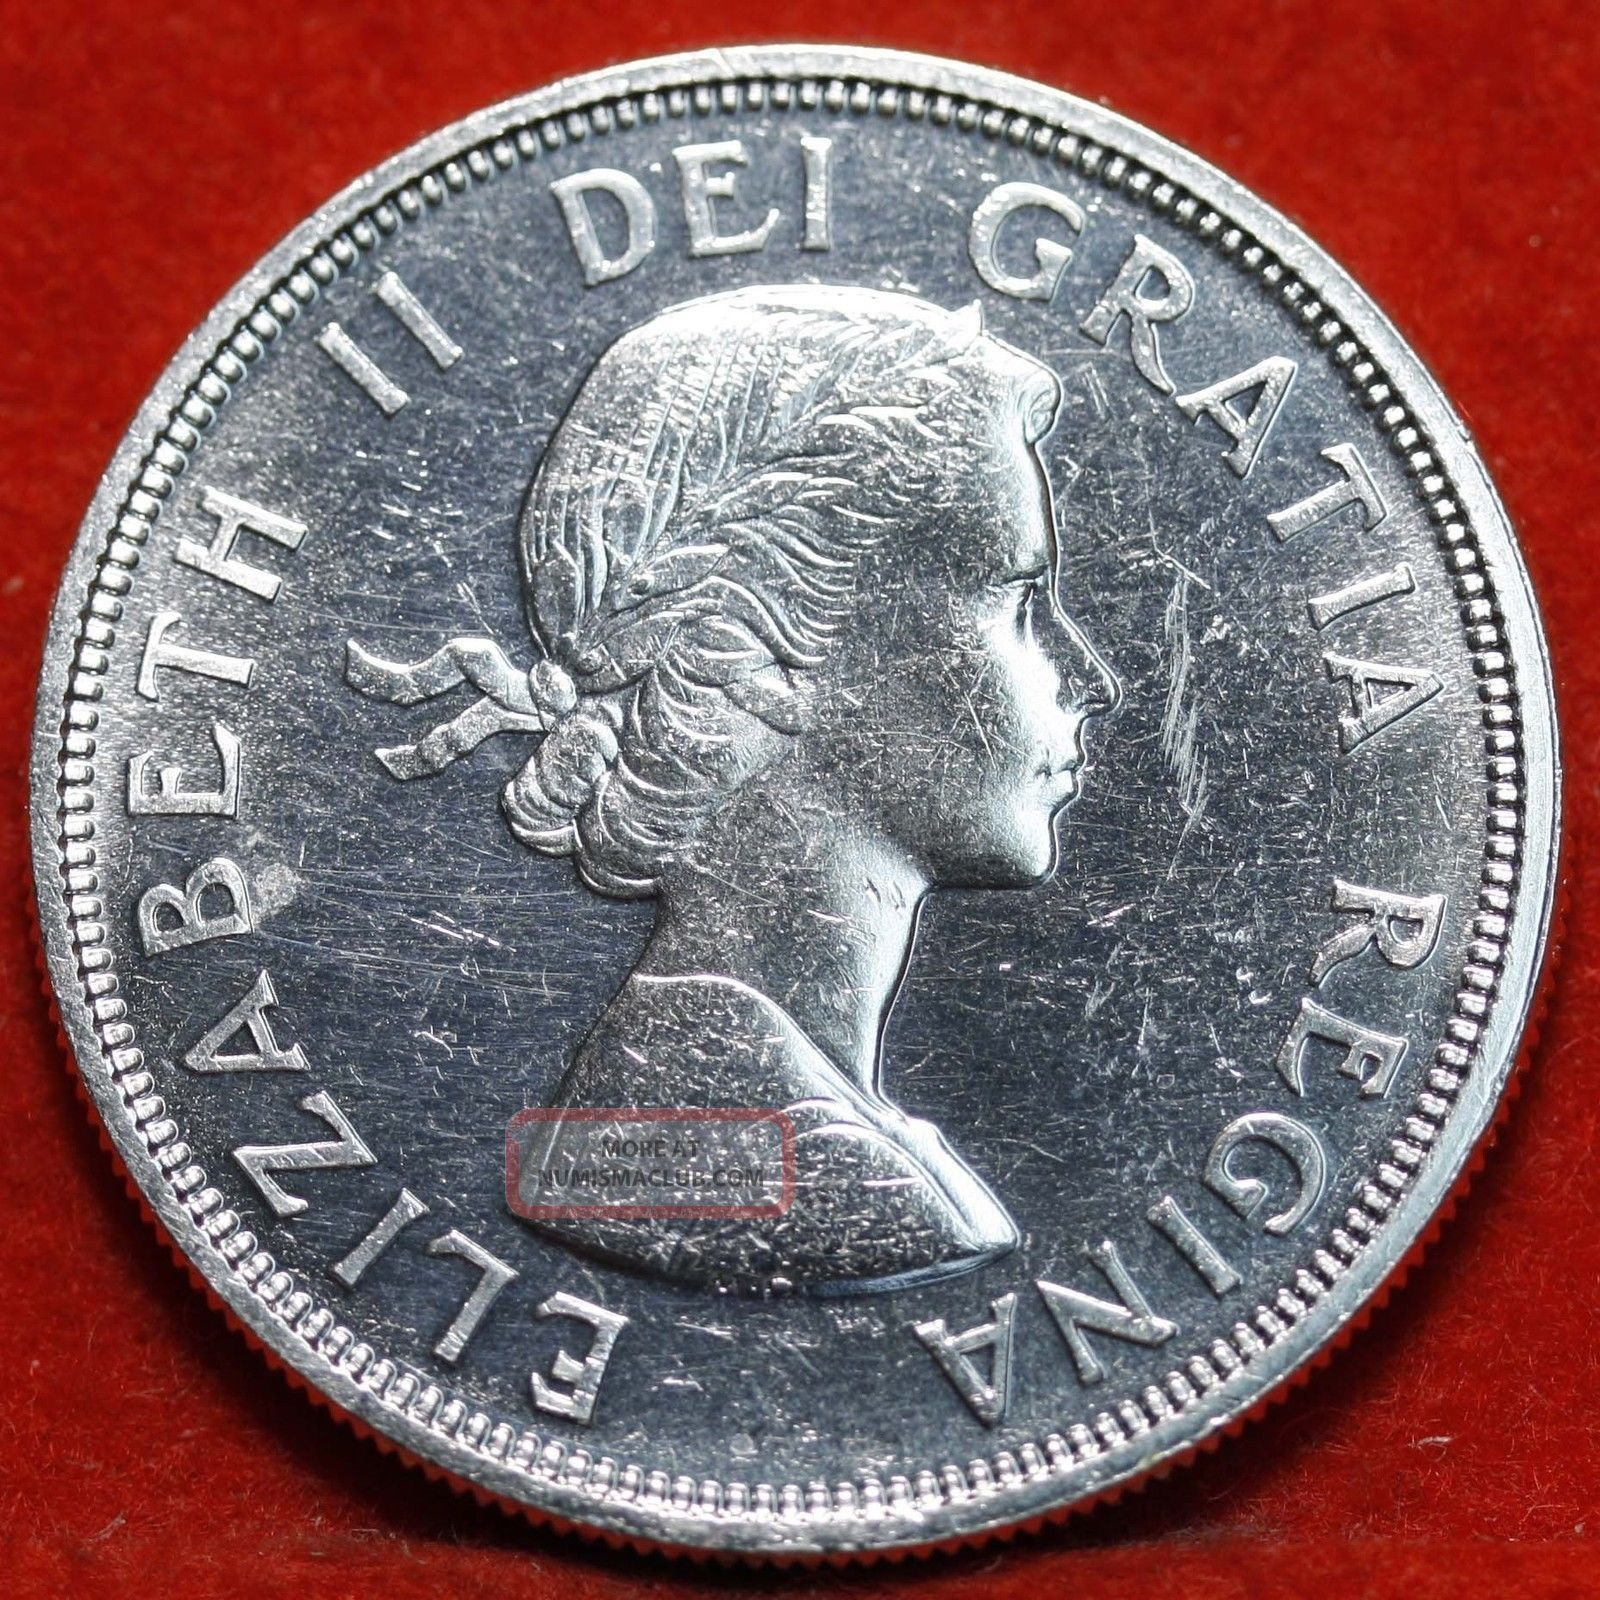 Uncirculated 1964 Canada Dollar Silver Foreign Coin S H